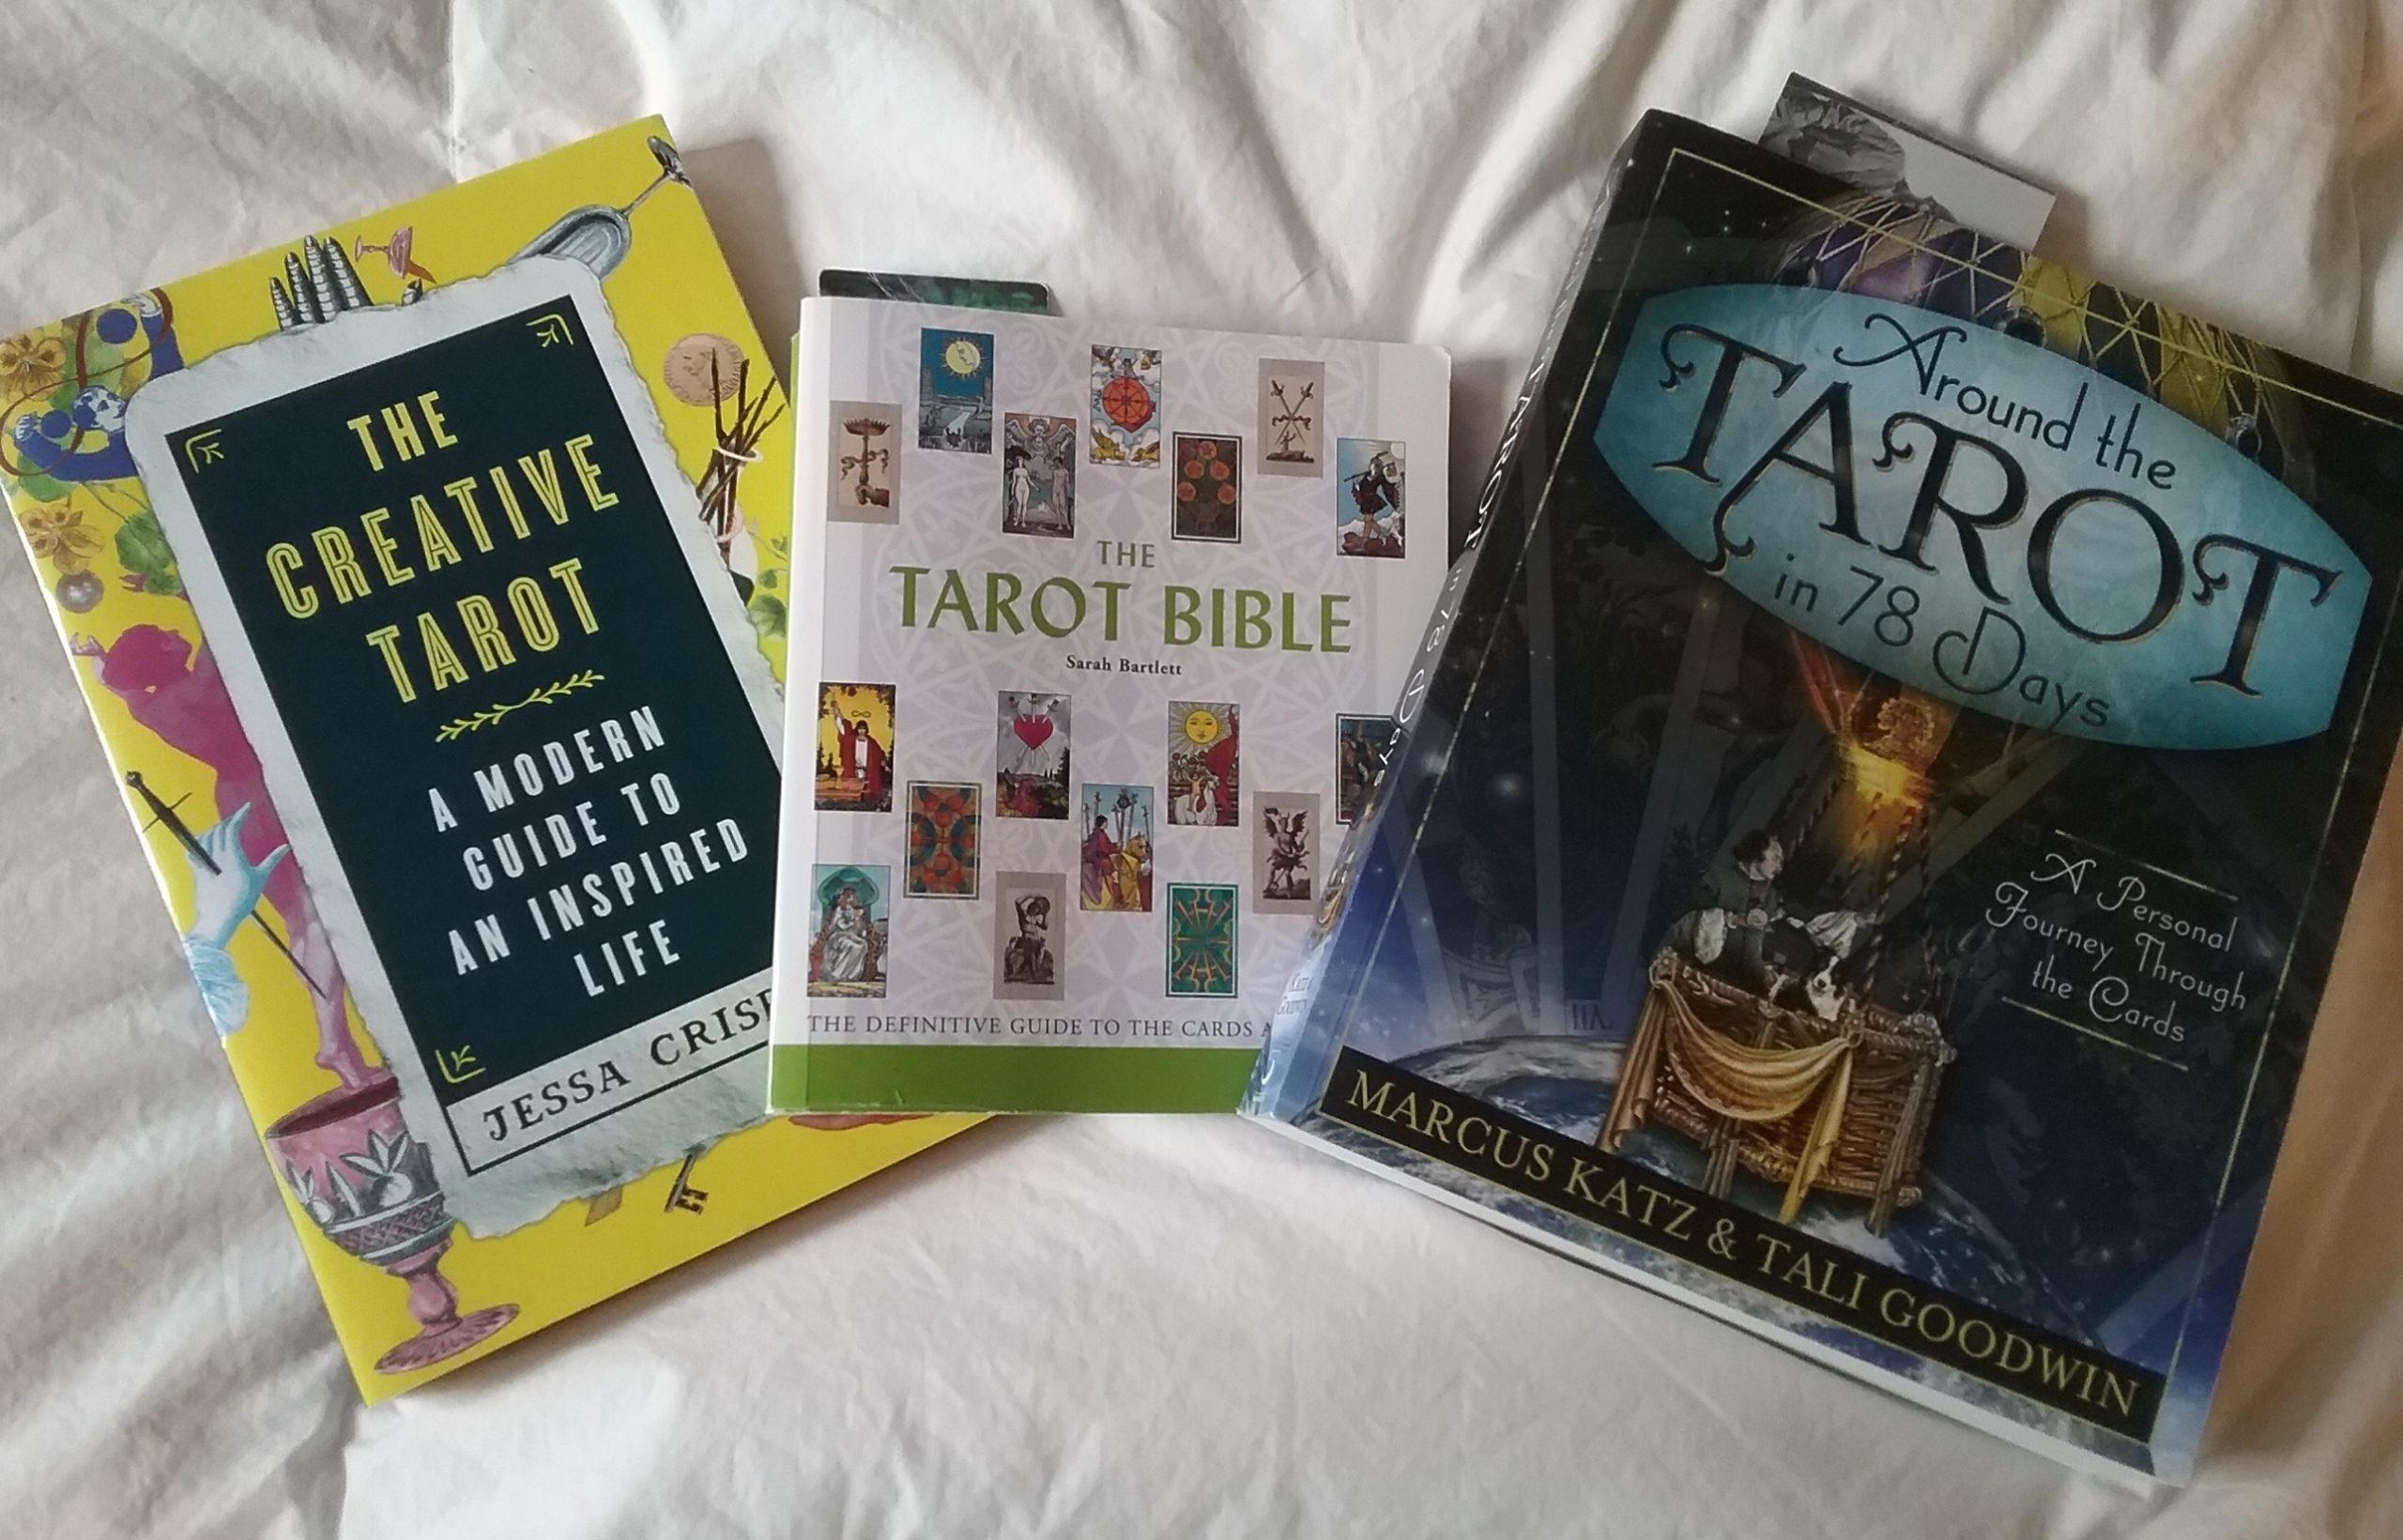 My tarot books: The Creative Tarot, The Tarot Bible, and Around the Tarot in 78 Days, 2020.